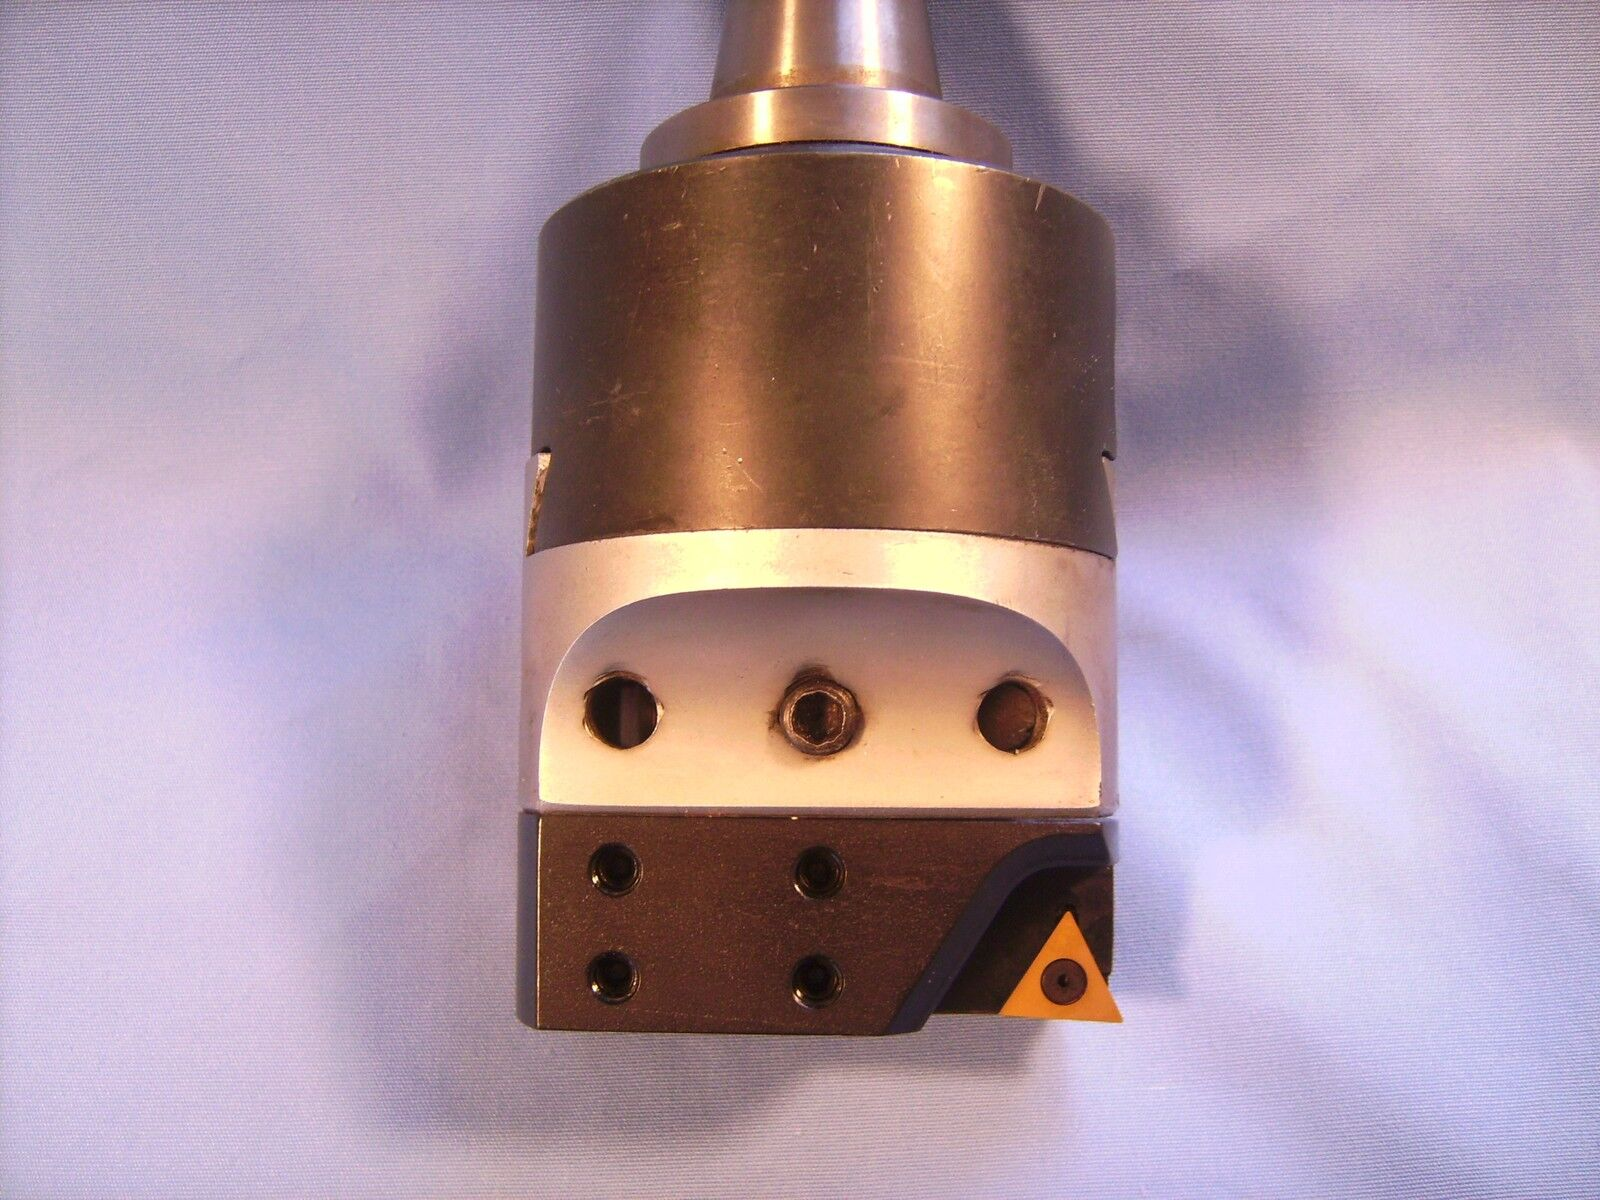 Boring Head Attachment - 3.0 Product..criterion Mill, Cnc, Indexable.